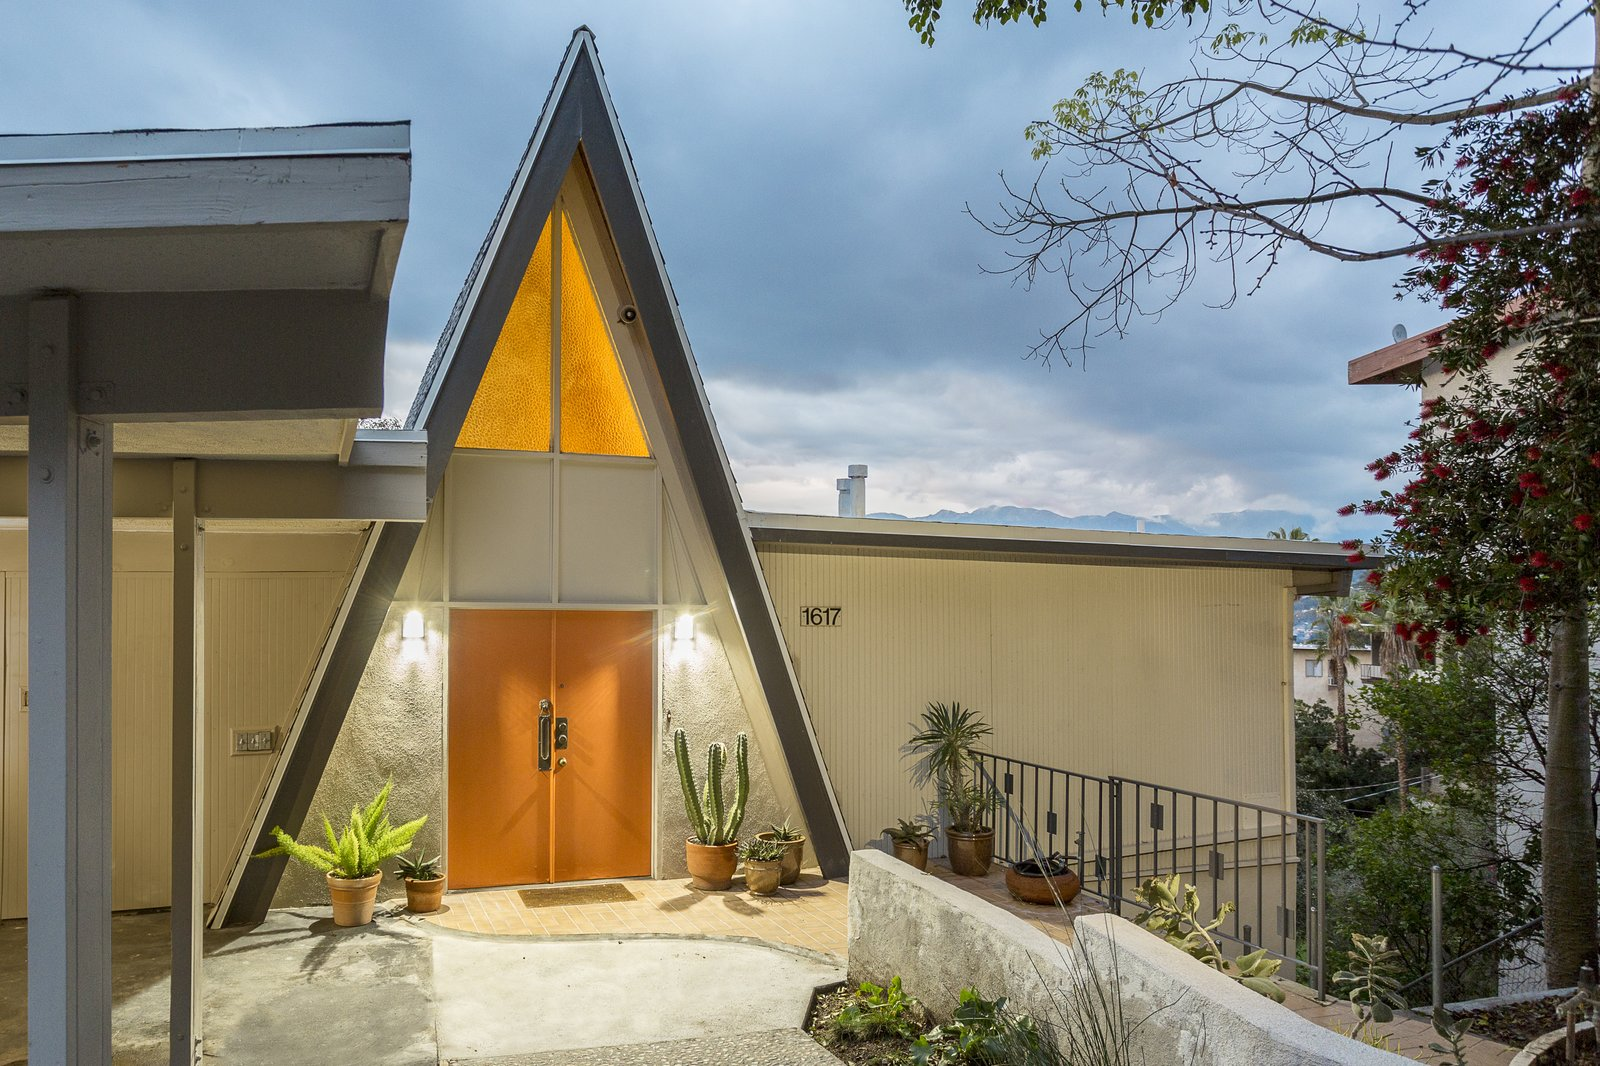 the  Photo 2 of 10 in A Modified A-Frame Overlooking Los Angeles Starts at $699K